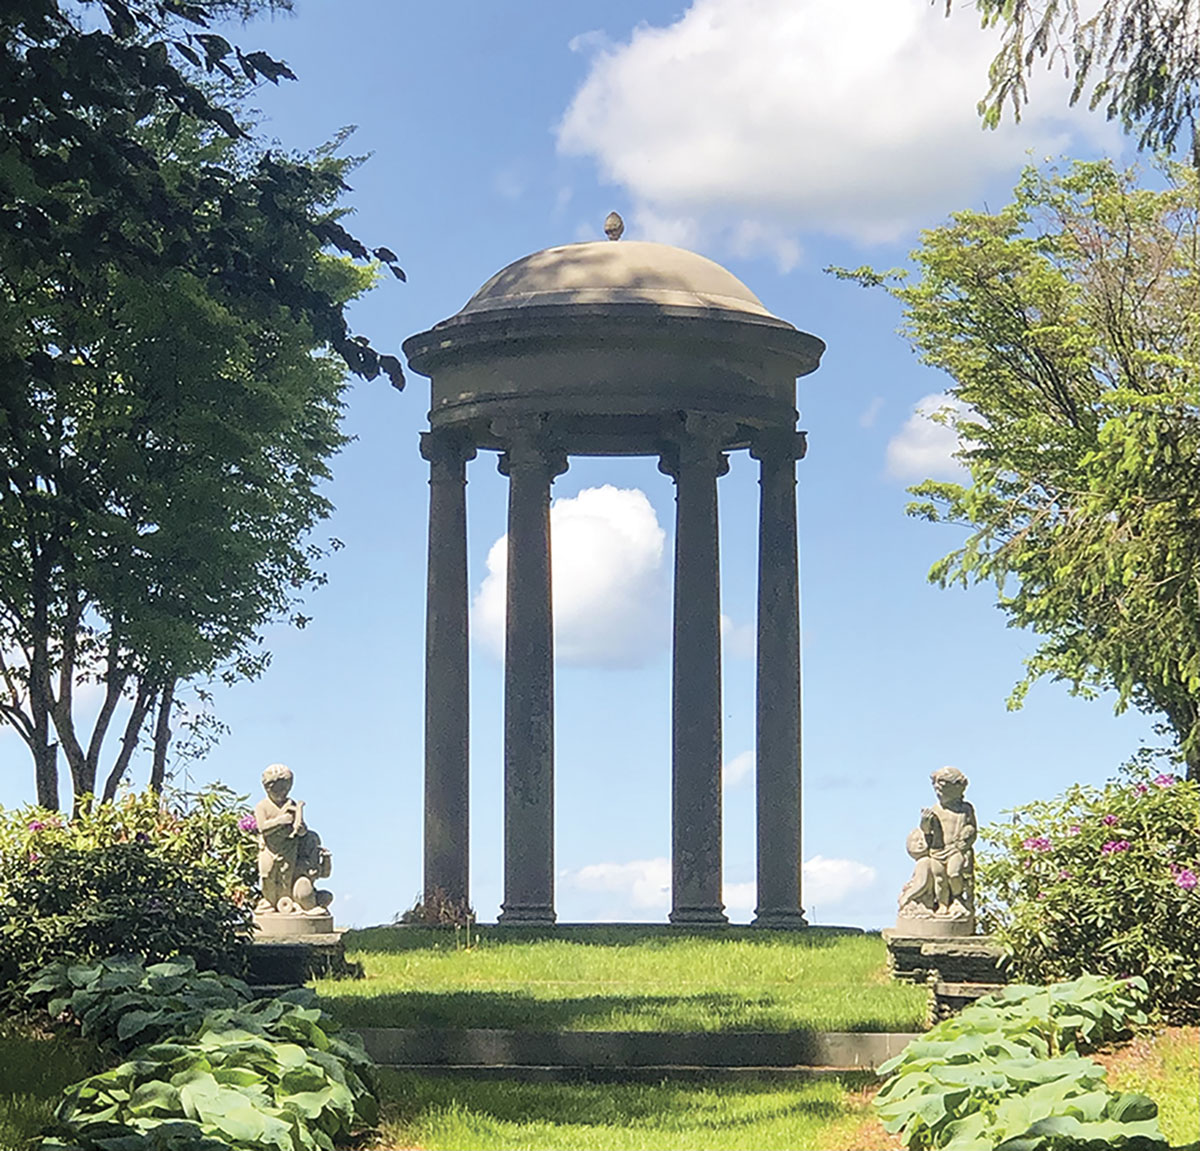 tempietto set against a blue sky at Wethersfield